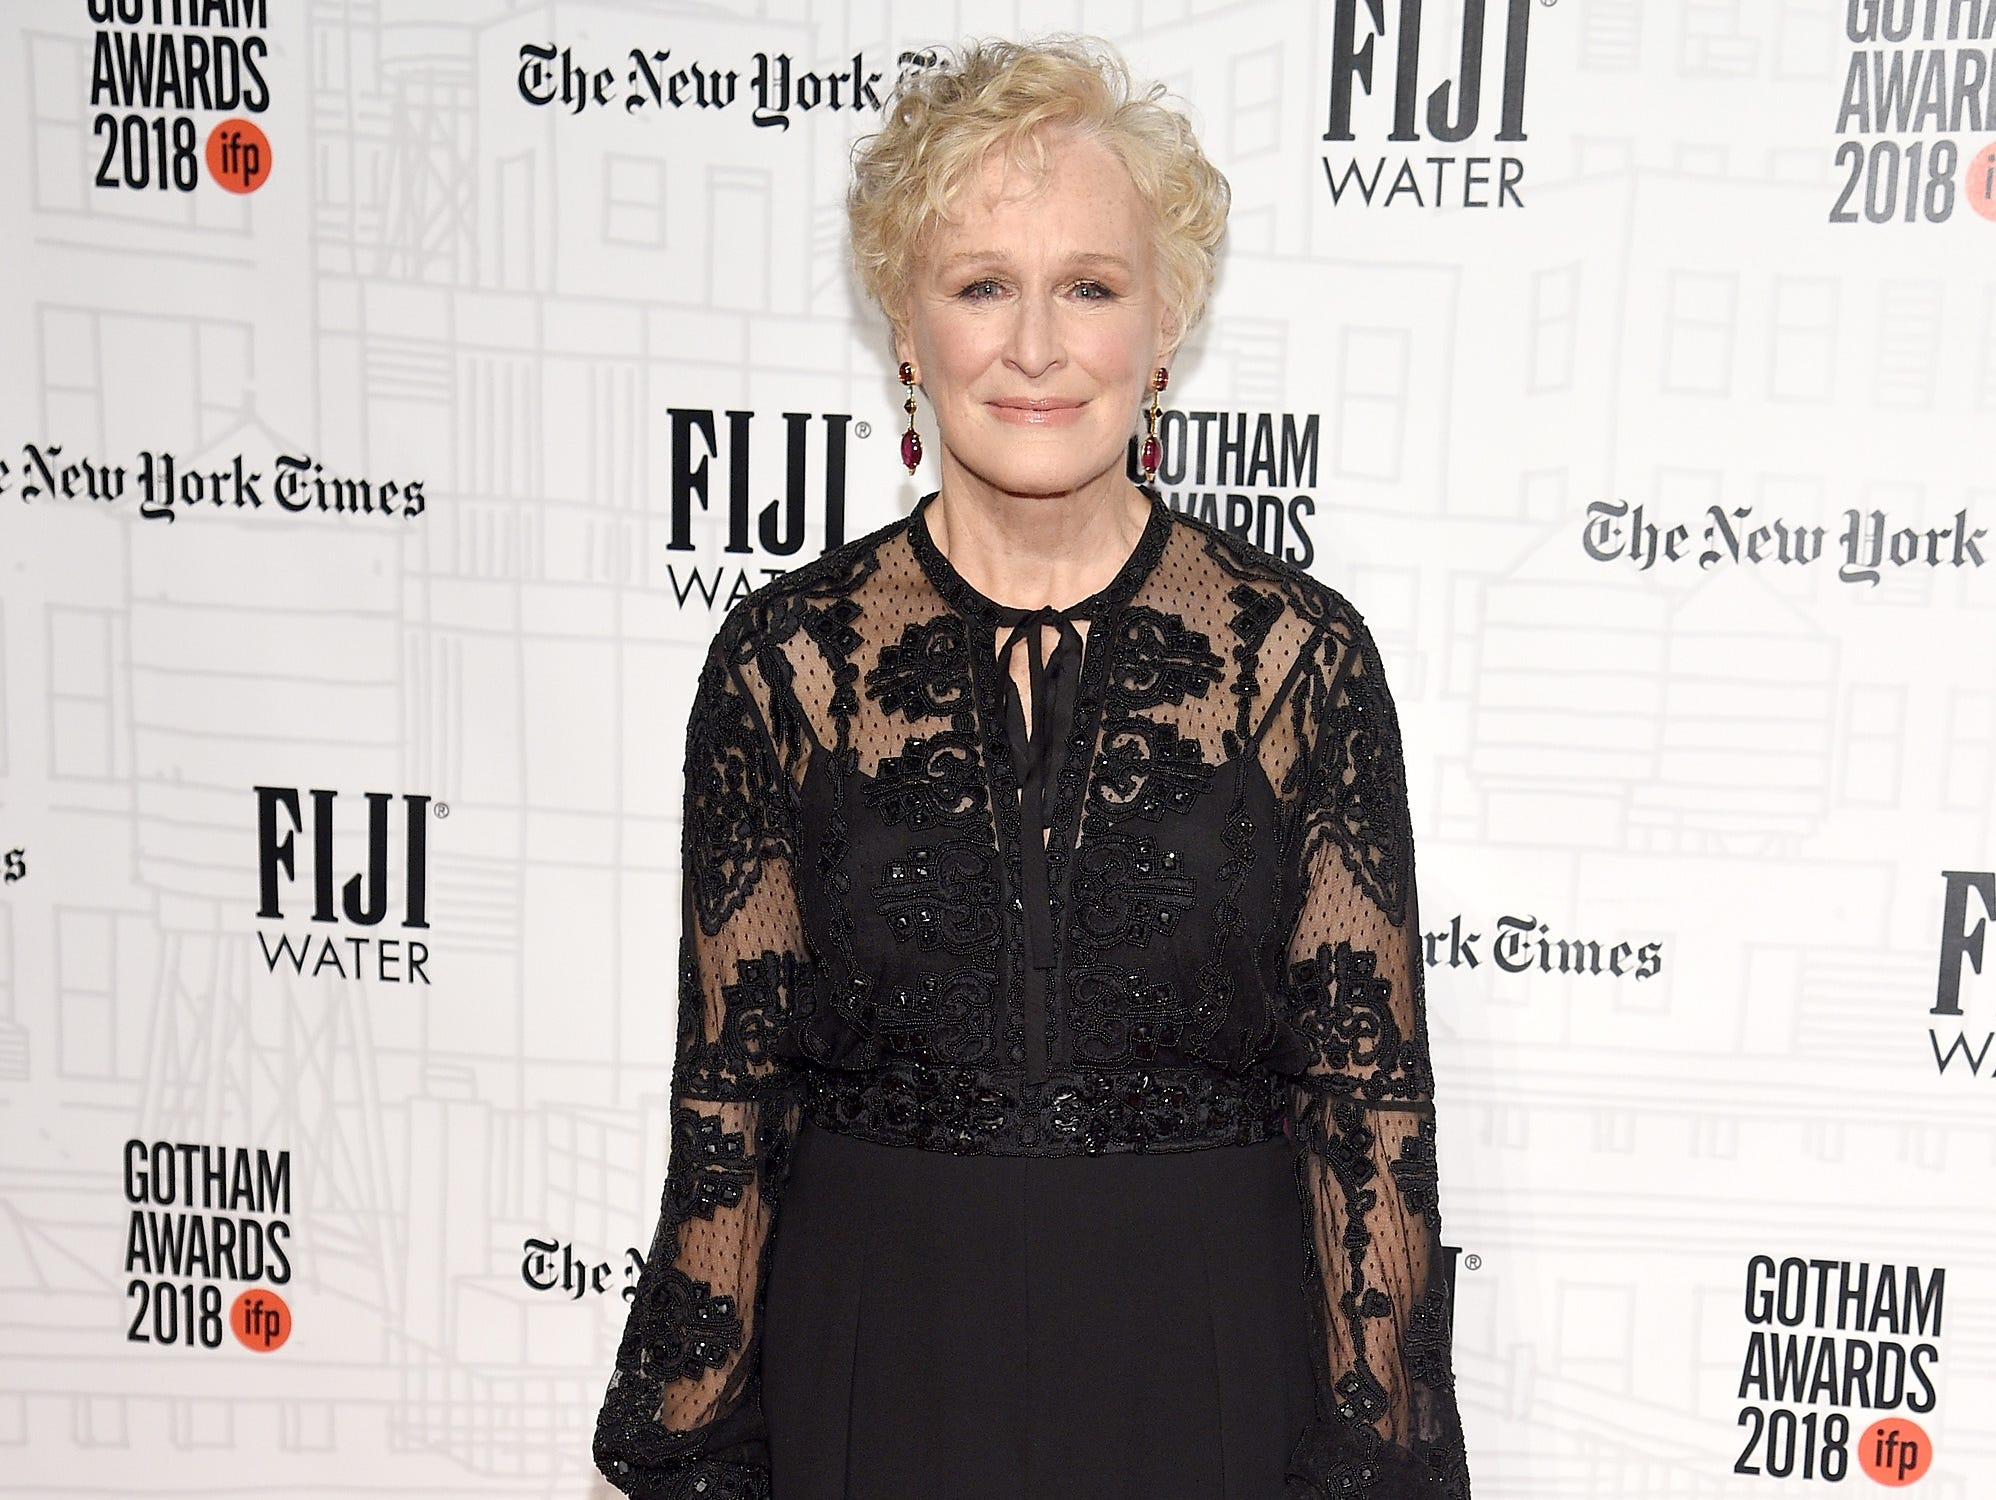 NEW YORK, NY - NOVEMBER 26: Glenn Close attends IFP's 27th Annual Gotham Independent Film Awards at Cipriani, Wall Street on November 26, 2018 in New York City.  (Photo by Dimitrios Kambouris/Getty Images for IFP) ORG XMIT: 775261541 ORIG FILE ID: 1065562768